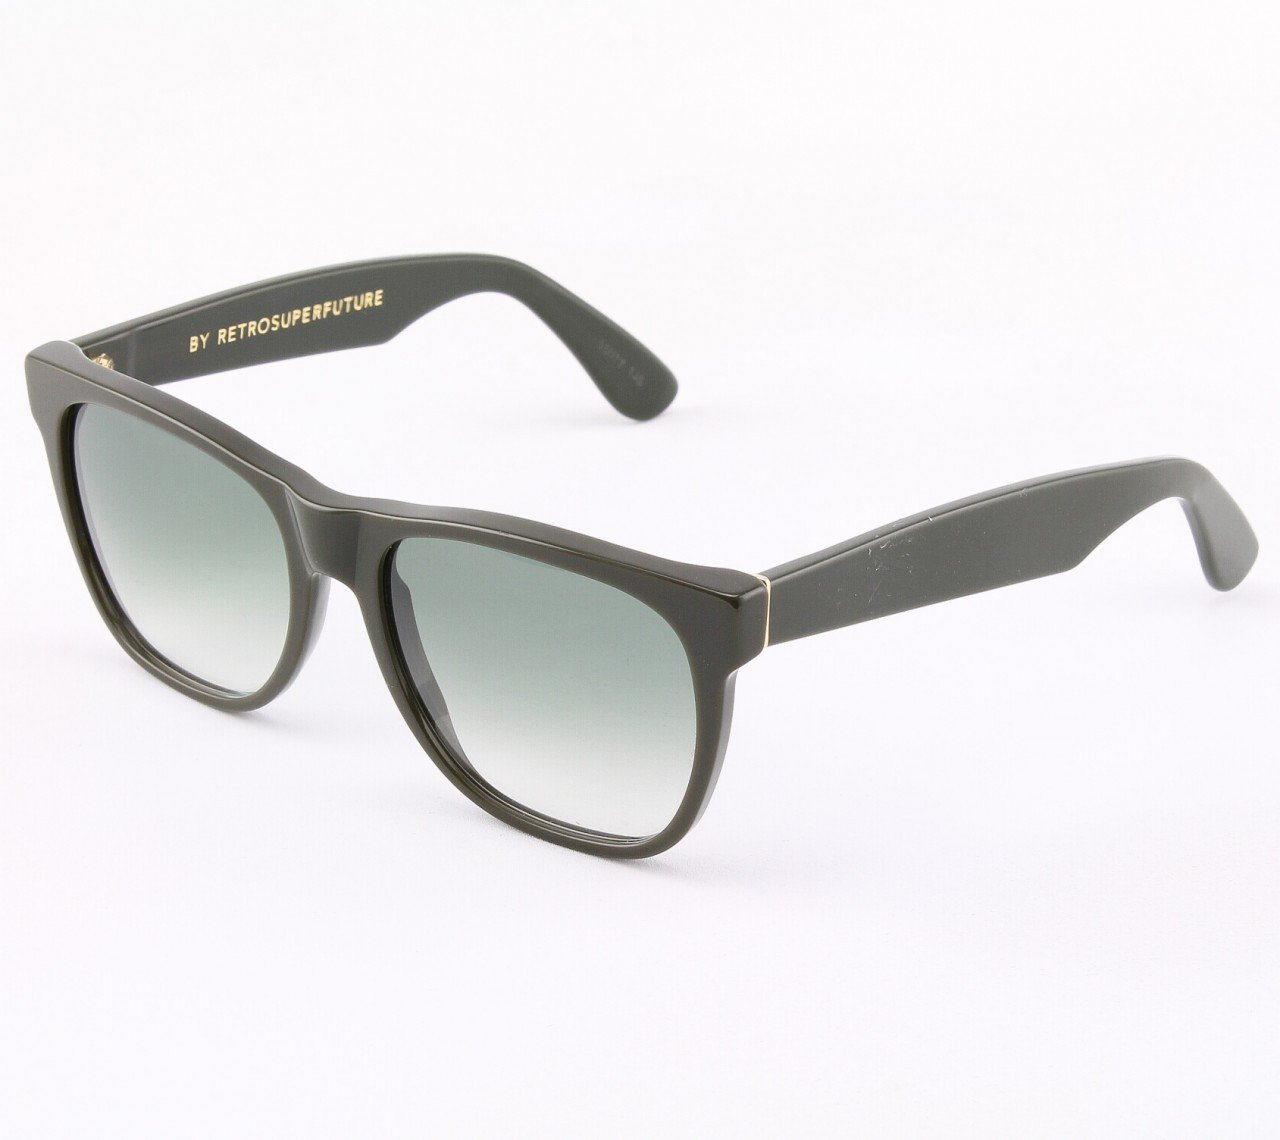 Super Classic 761/2T Sunglasses Olive Green with Green Gradient Zeiss Lenses by RETROSUPERFUTURE